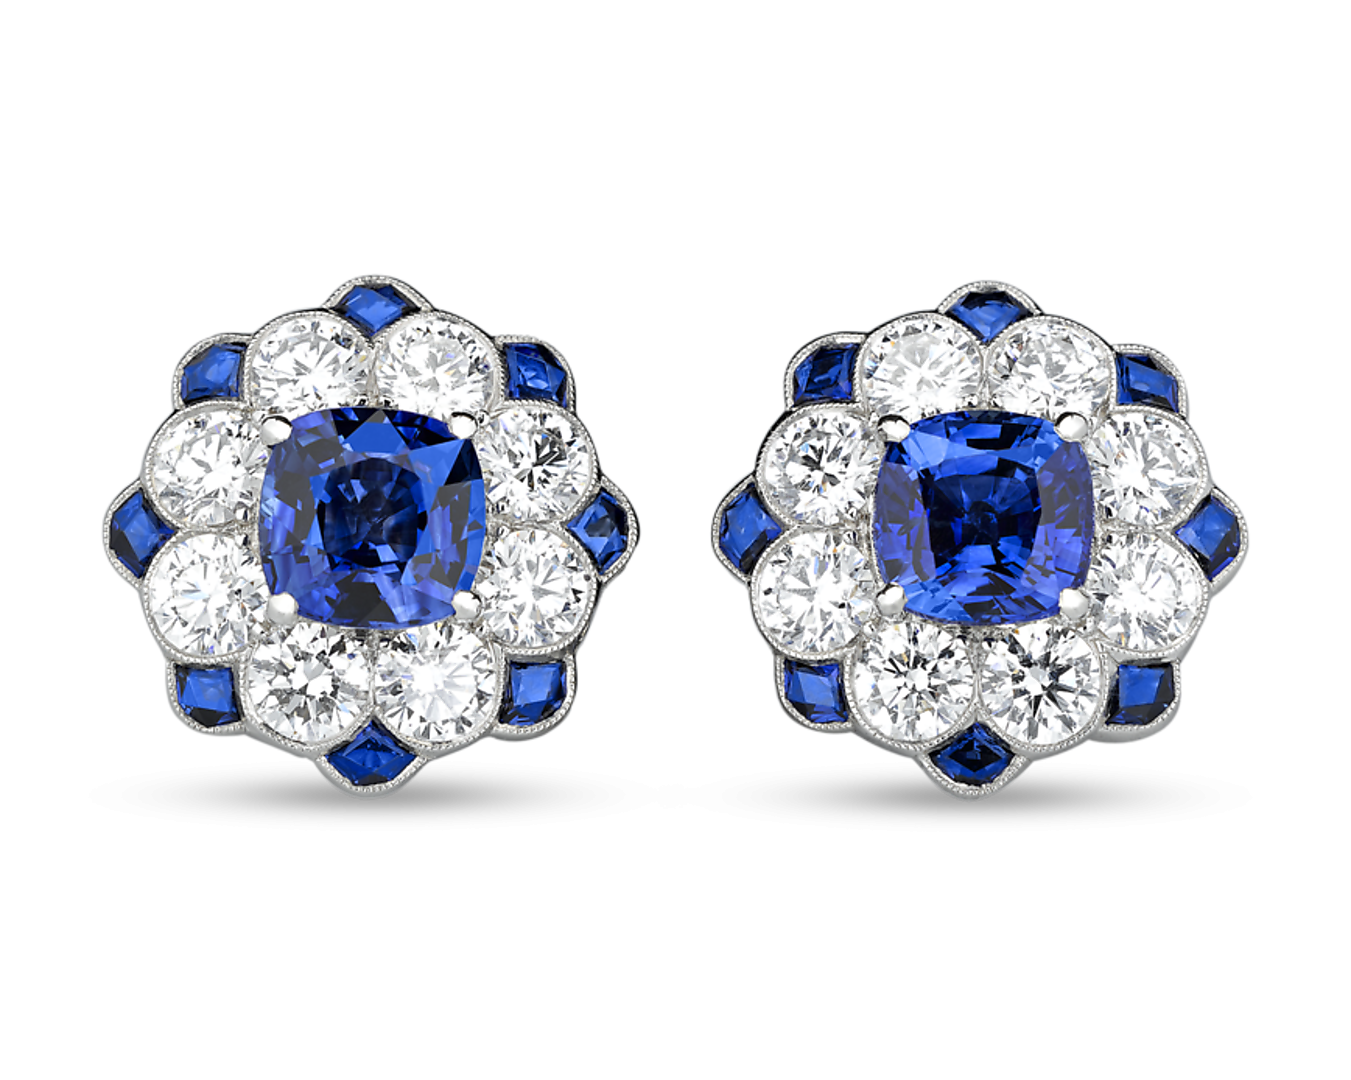 Blue Sapphire And Diamond Earrings 2 54 Carats With Images Diamond Earrings Studs Sapphire And Diamond Earrings